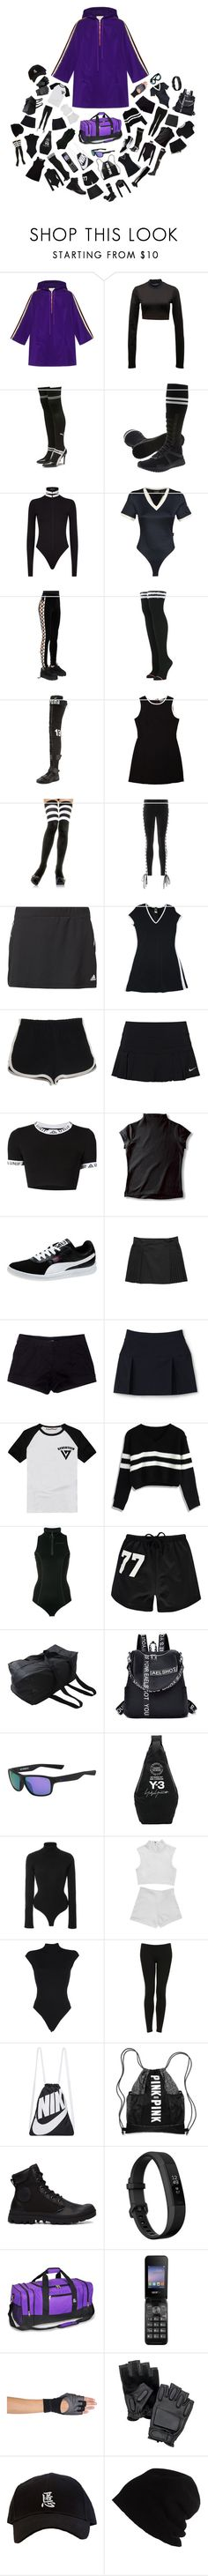 """Untitled #941"" by astral-leech ❤ liked on Polyvore featuring Gucci, Puma, Stance, Leg Avenue, adidas, Retrò, NIKE, UNIF, Prada Sport and Lands' End"